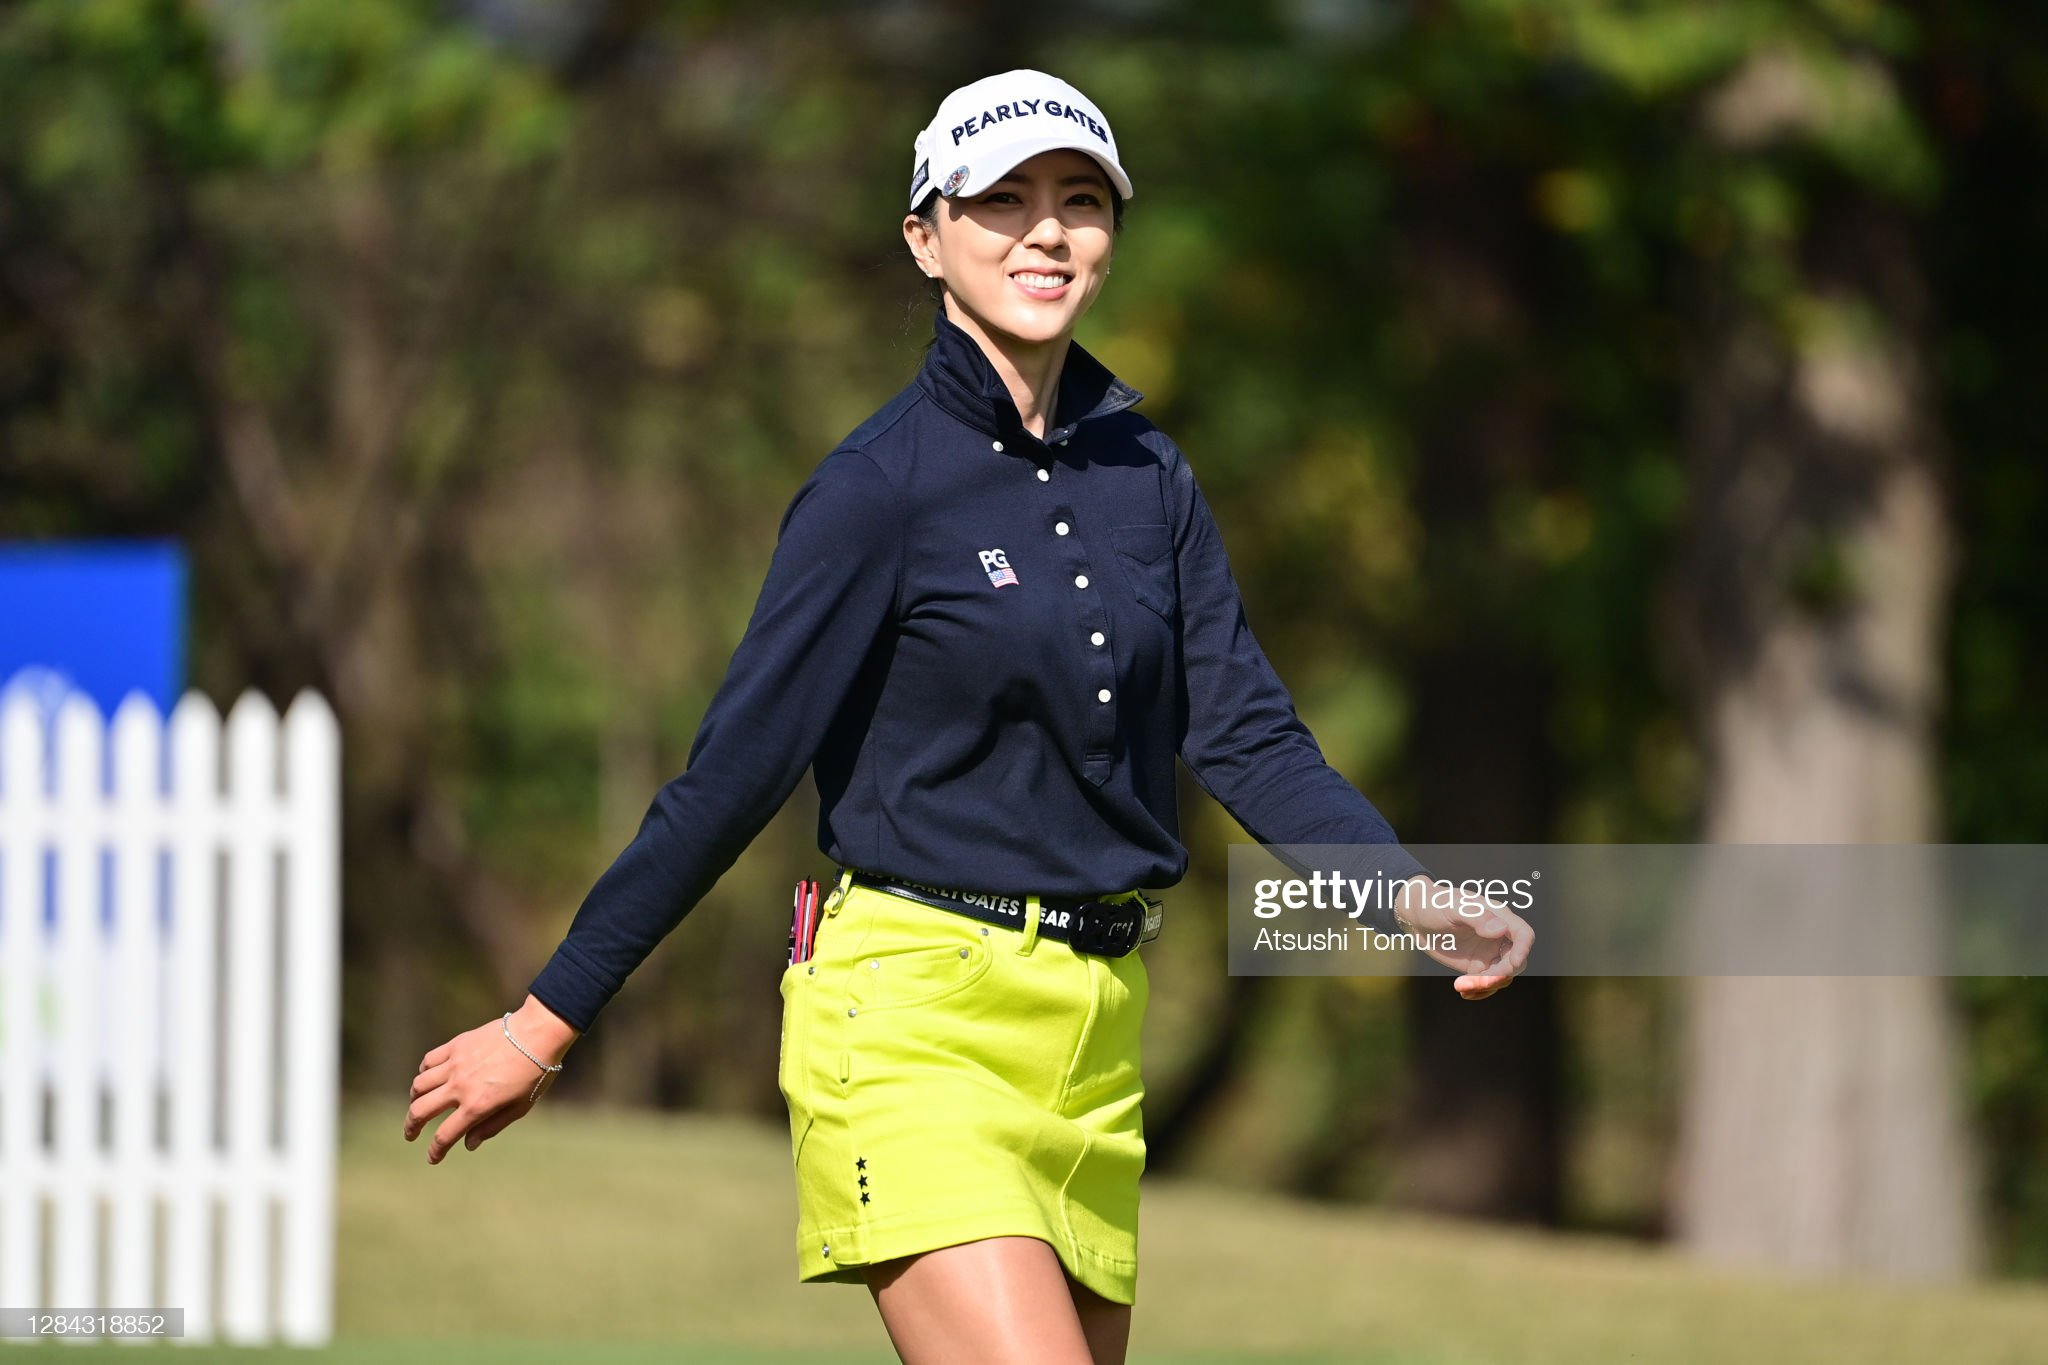 https://media.gettyimages.com/photos/chaeyoung-yoon-of-south-korea-smiles-during-the-second-round-of-the-picture-id1284318852?s=2048x2048